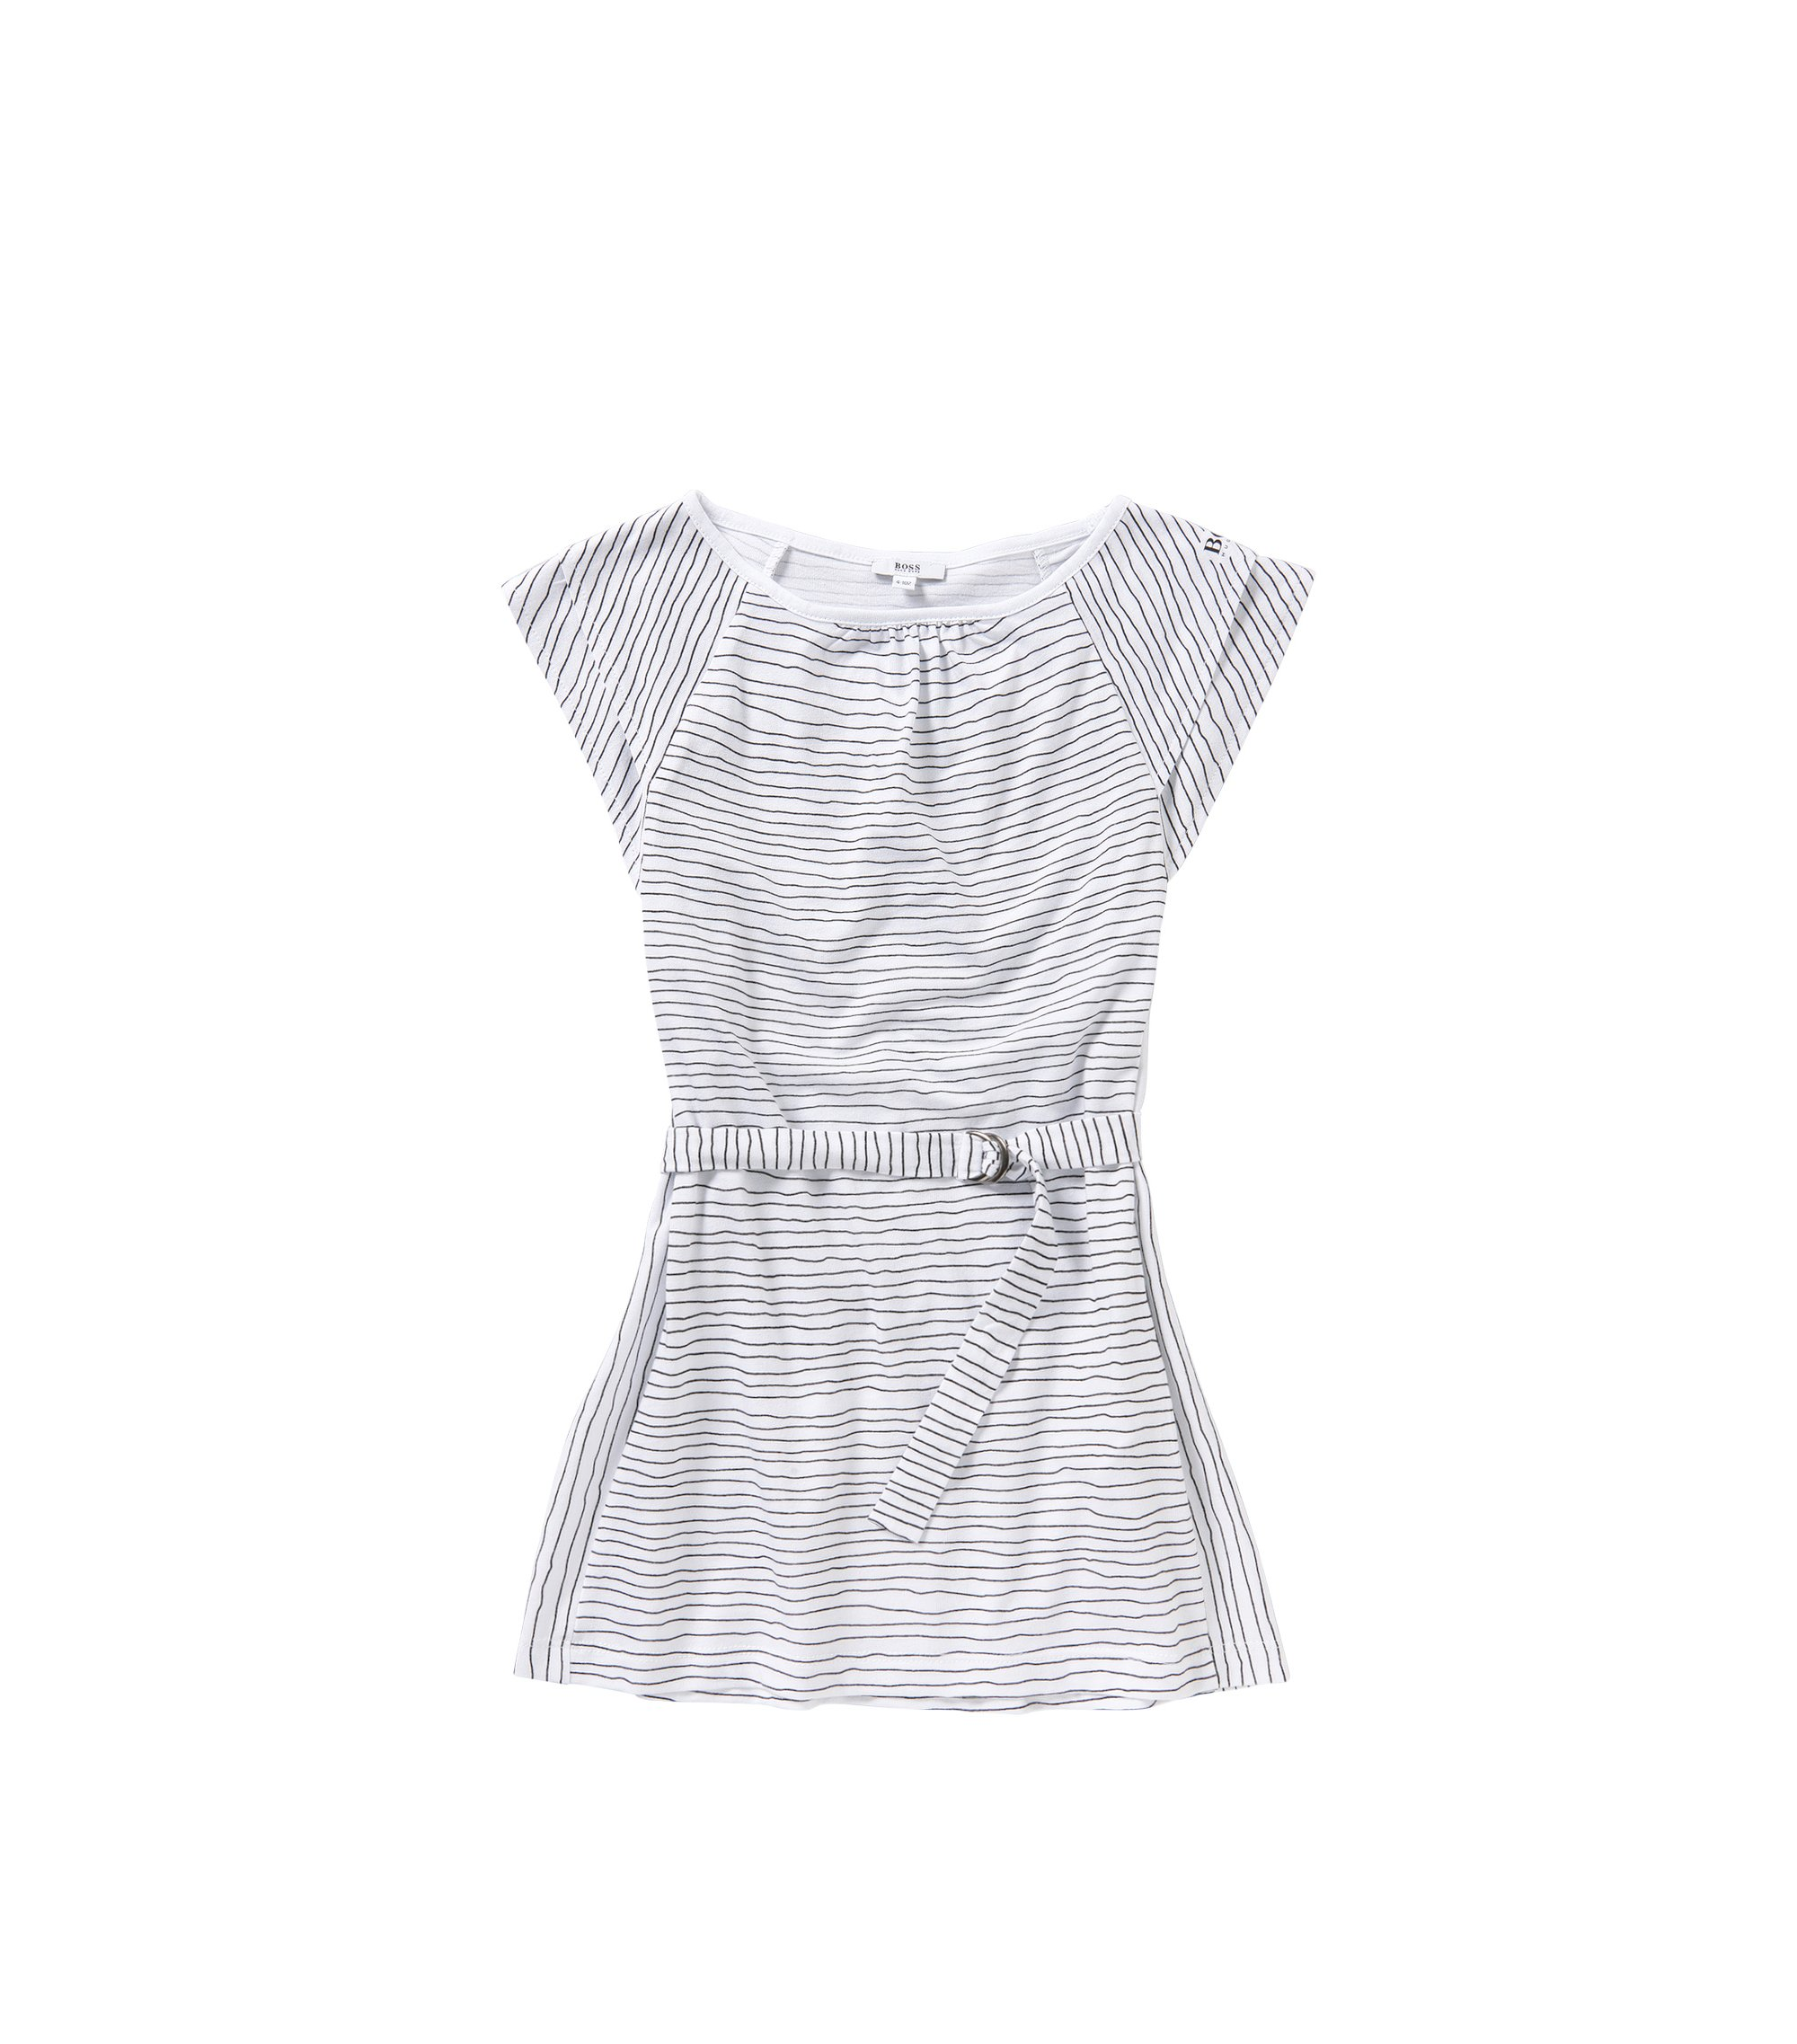 Striped kids' dress in cotton with belt: 'J12148', Patterned